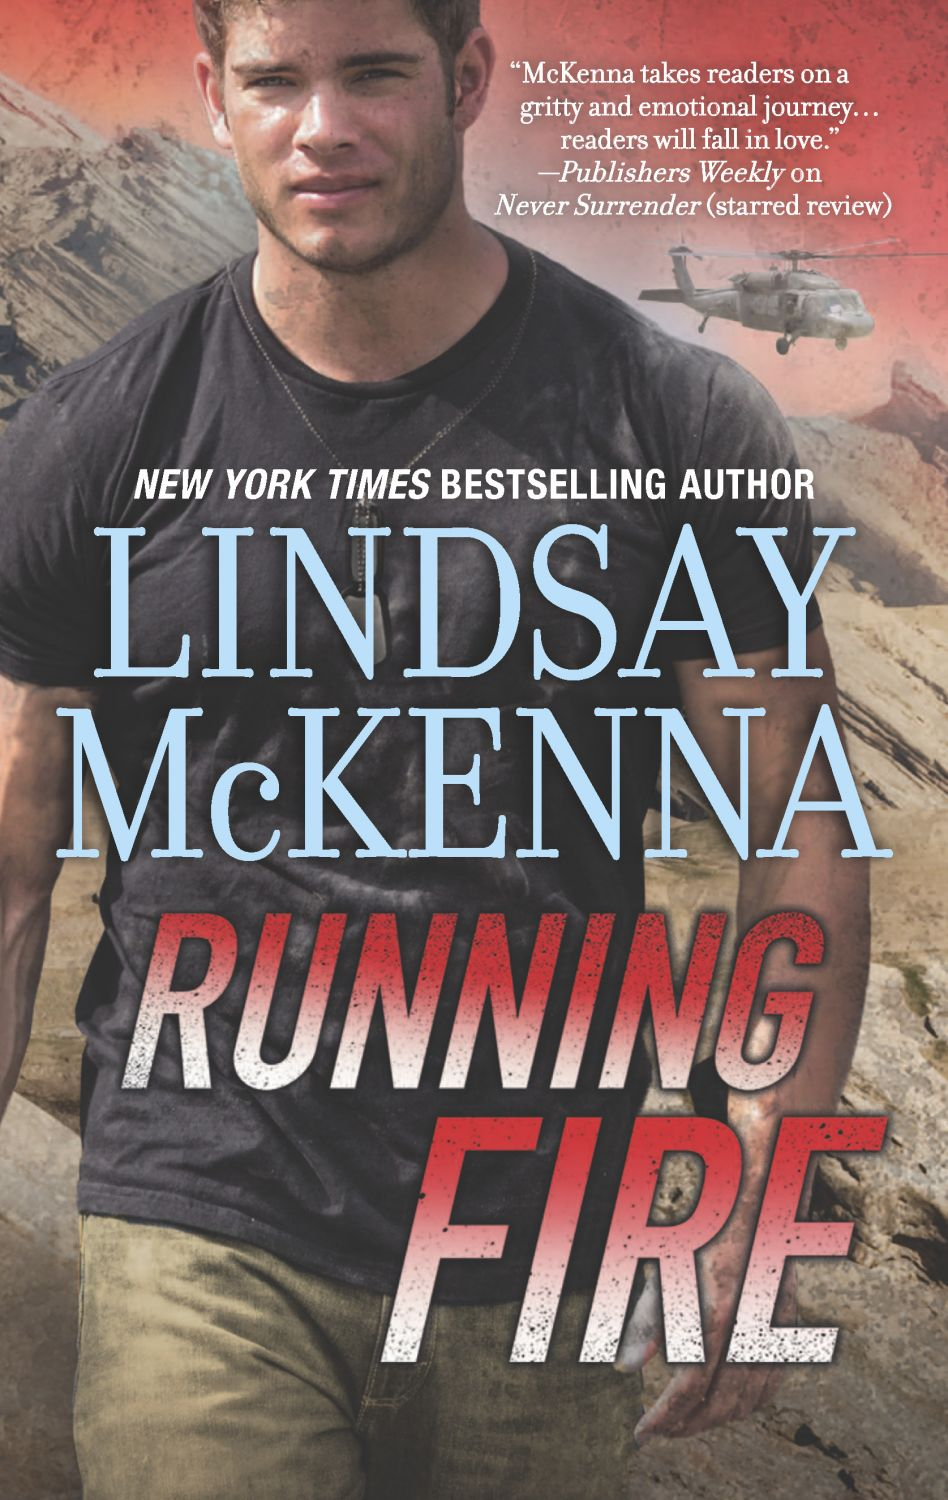 http://tlcbooktours.com/wp-content/uploads/2015/02/Running-Fire-by-Lindsay-McKenna_book-cover.jpg